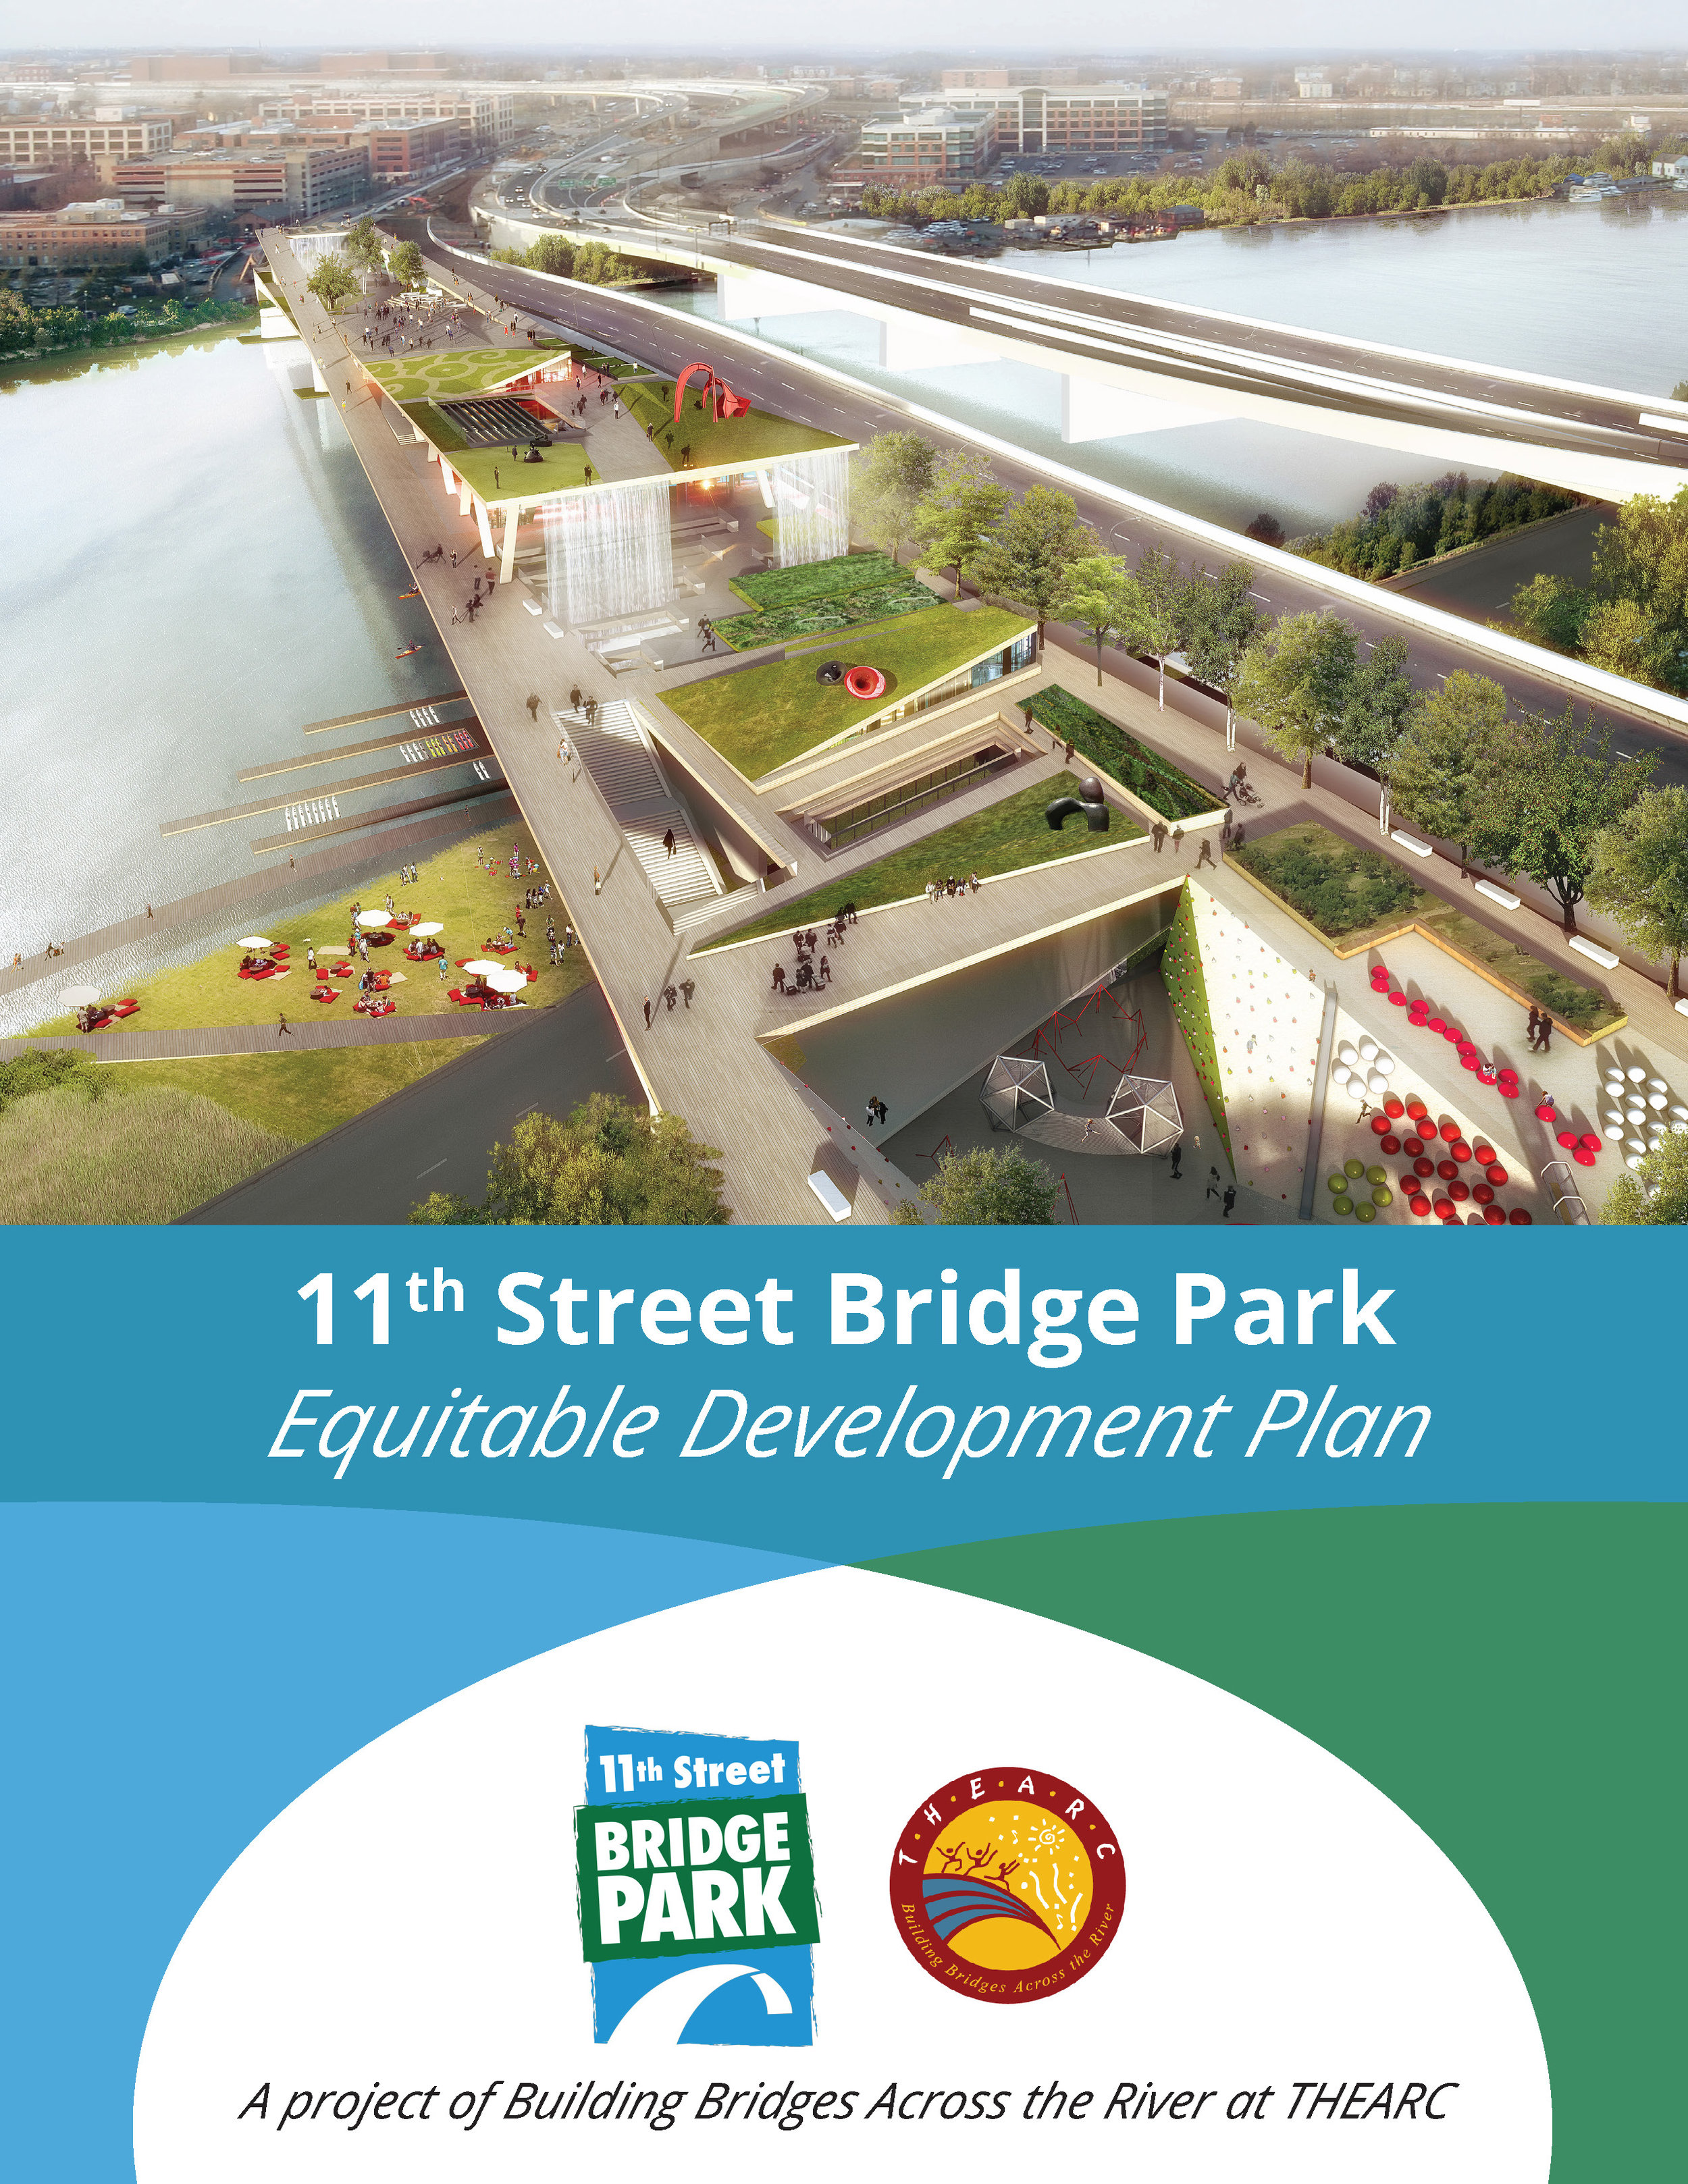 11th Street Bridge Park's Equitable Development Plan.